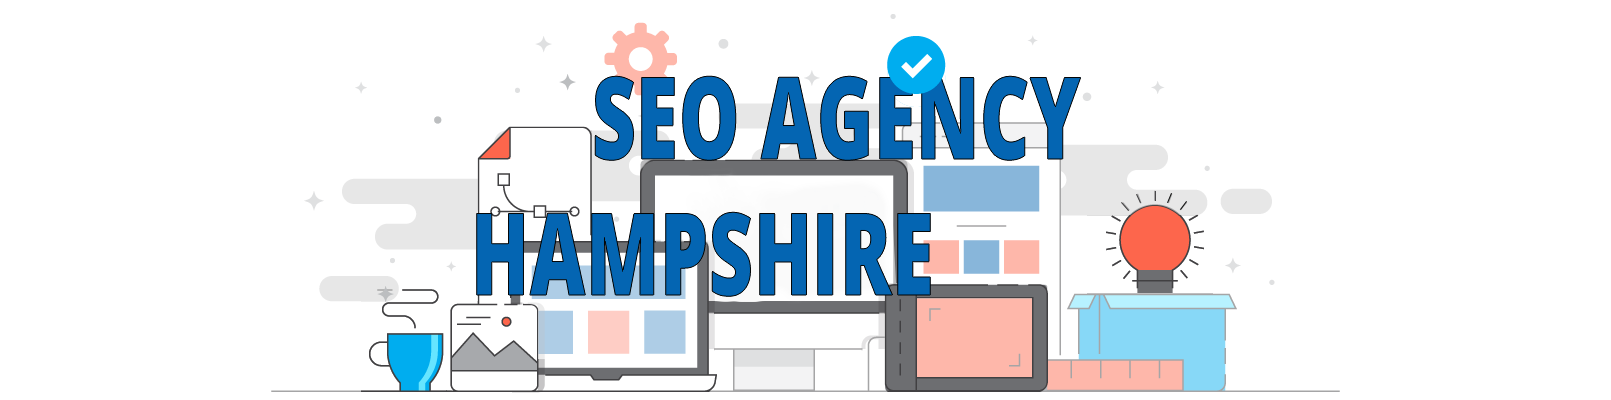 seek social seo agency hampshire header with transparent background